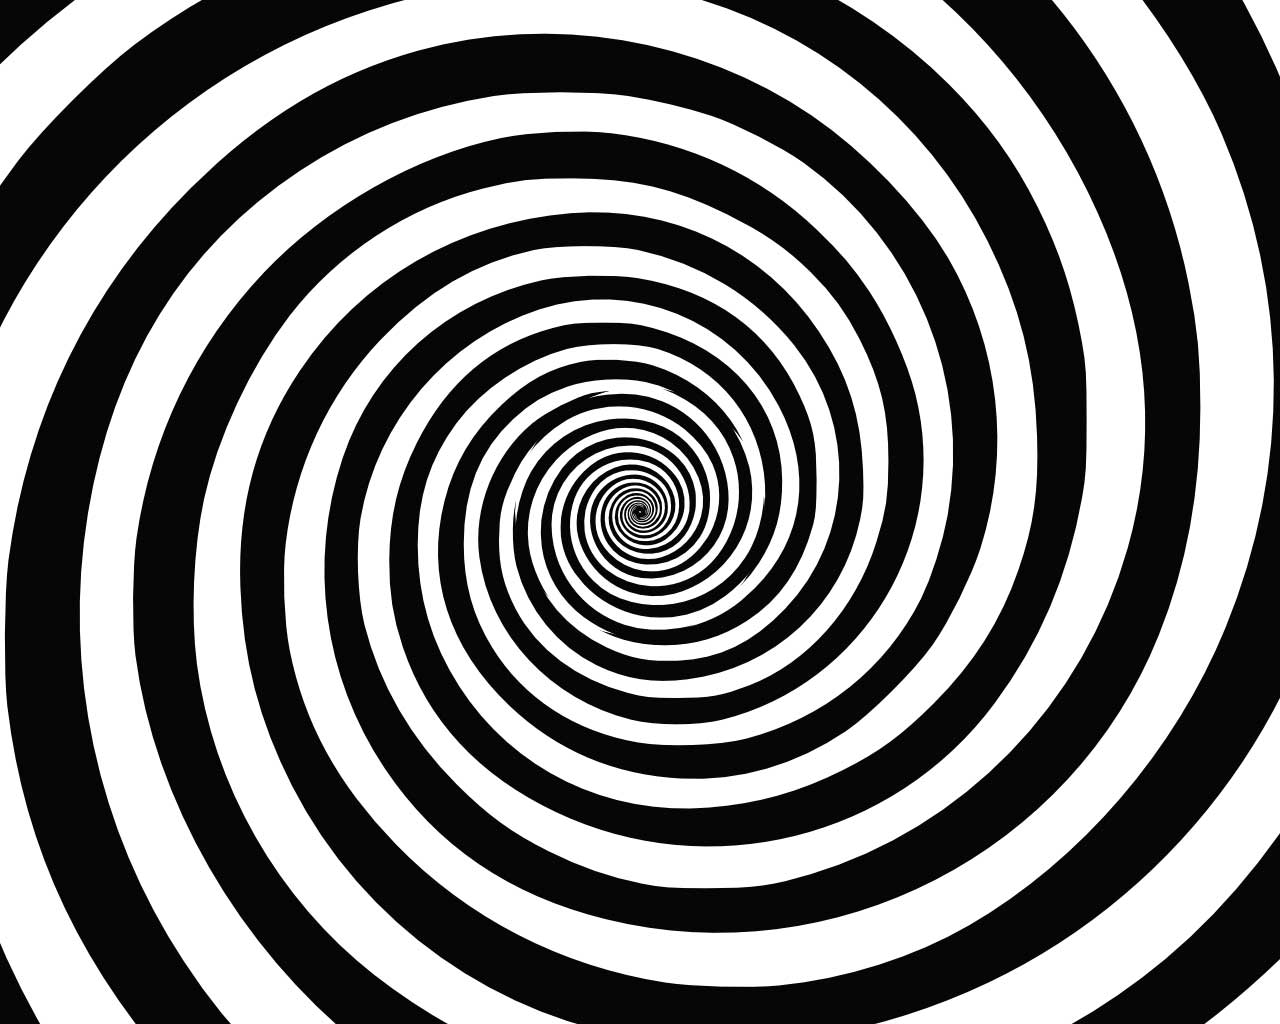 Double_Spiral_1280x1024